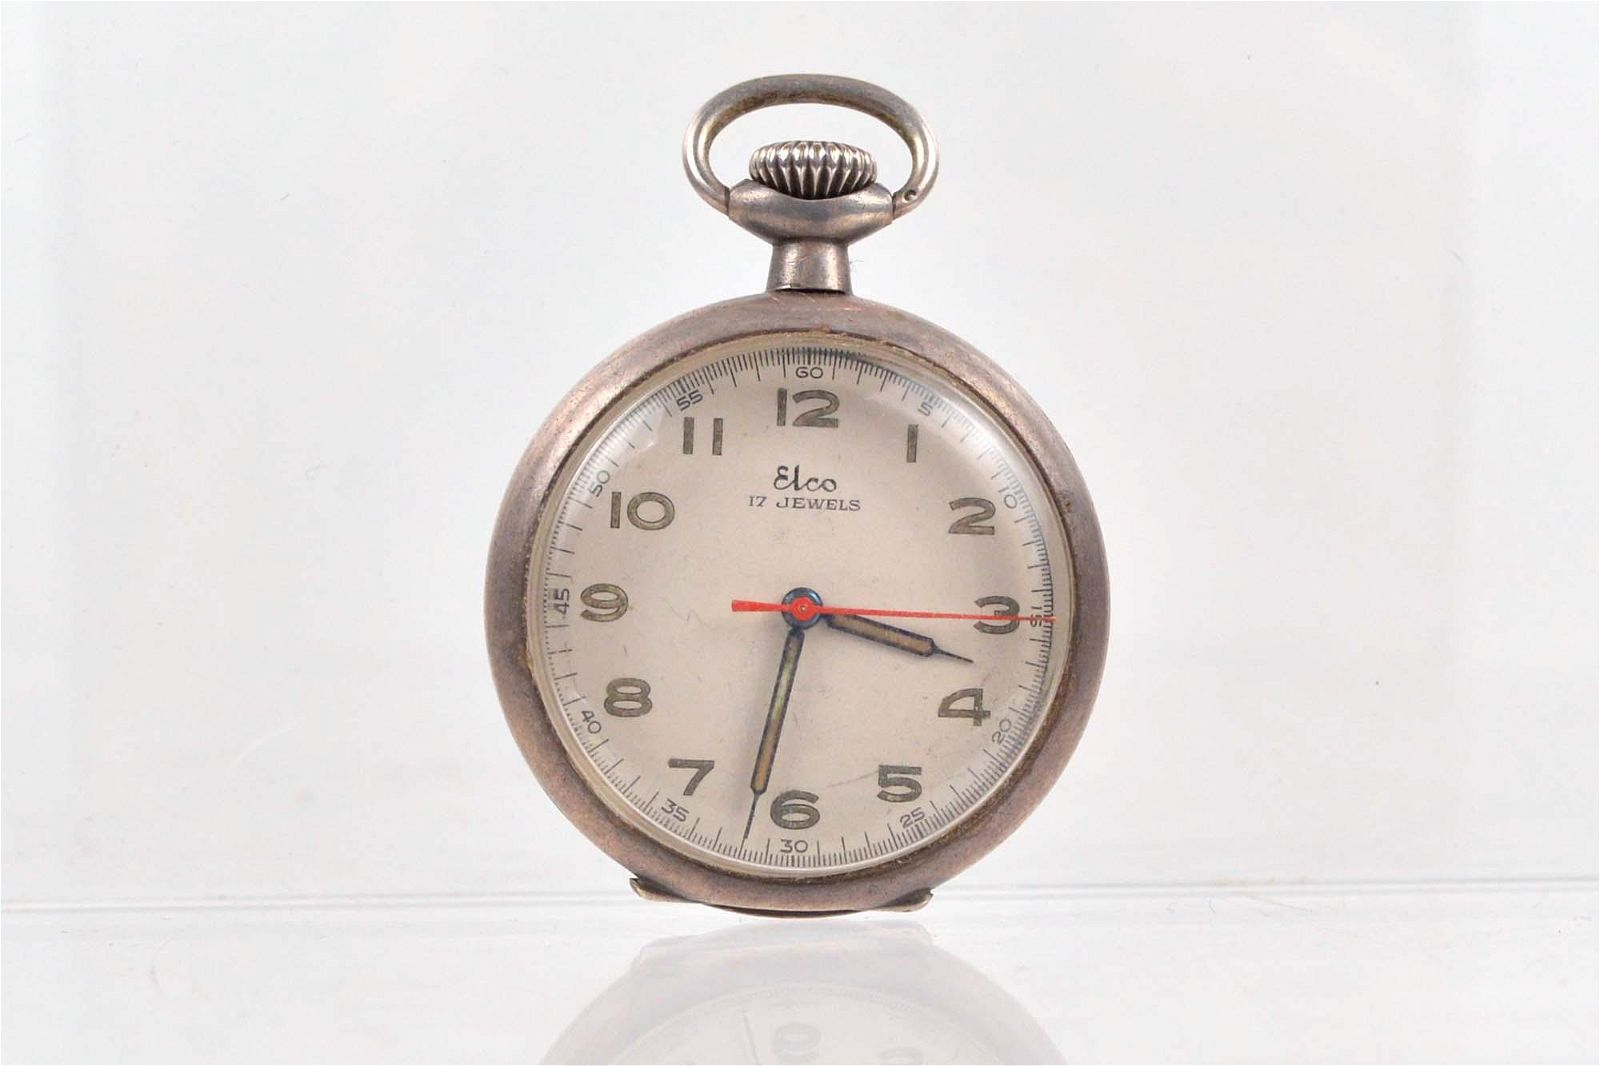 Elco - Antique sterling silver pocket watch